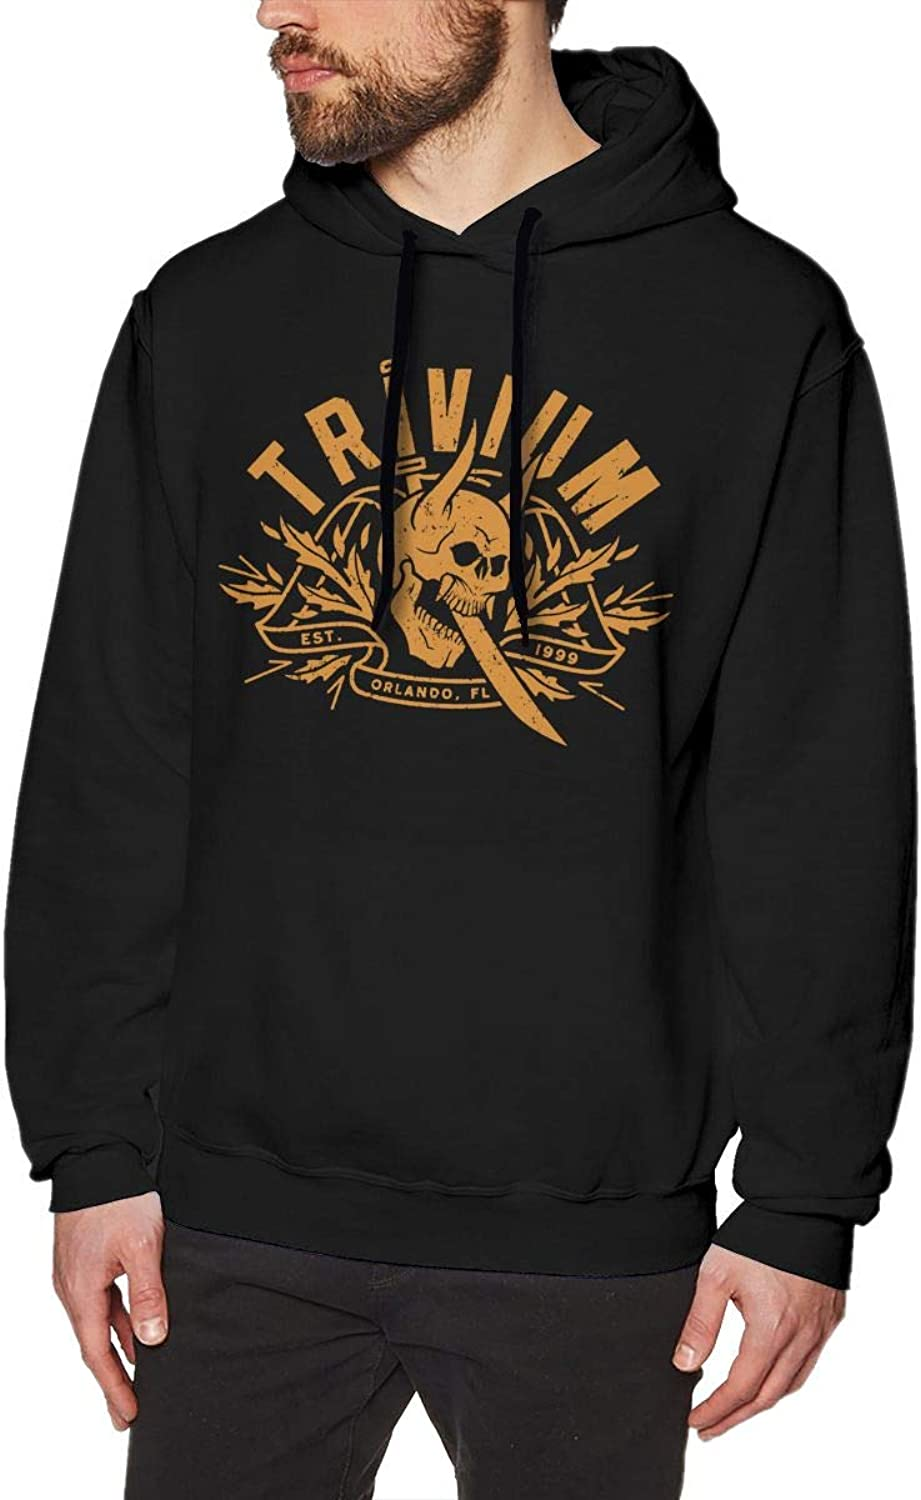 Hatpee Trivium Men Casual Hooded Sweatshirt with Drawstring Black